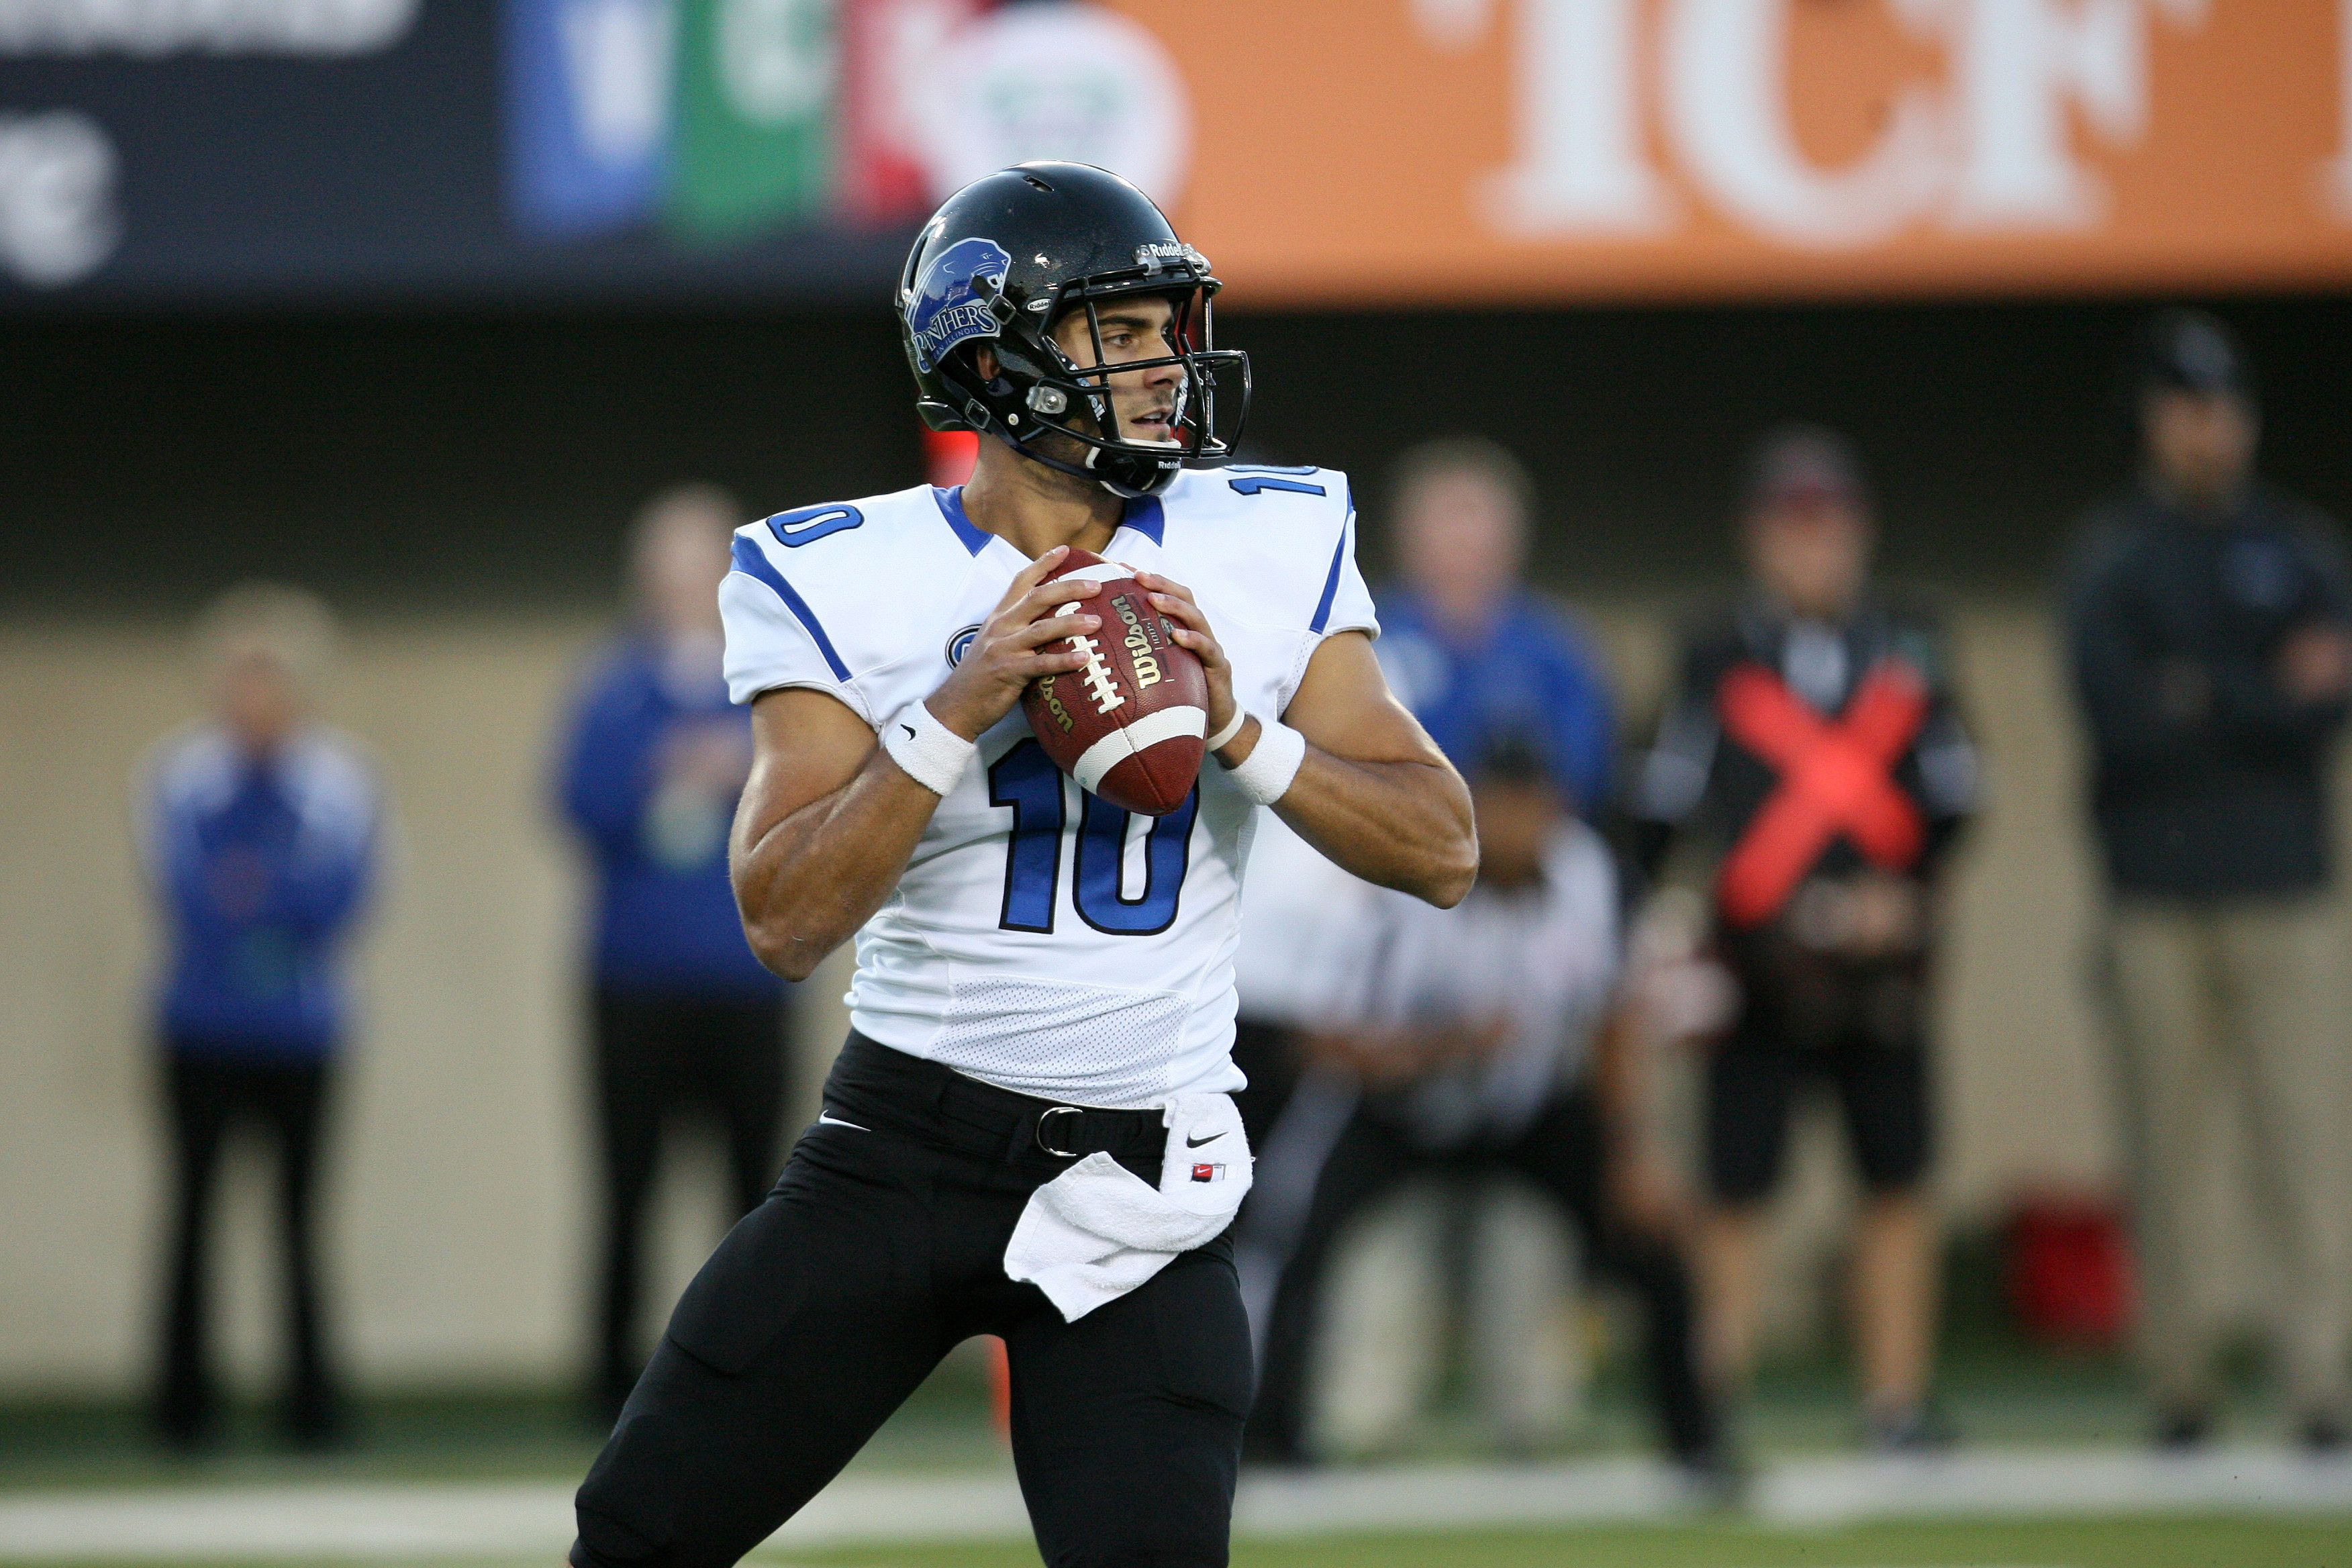 Eastern Illinois quarterback Jimmy Garoppolo looks for an open receiver in 2013